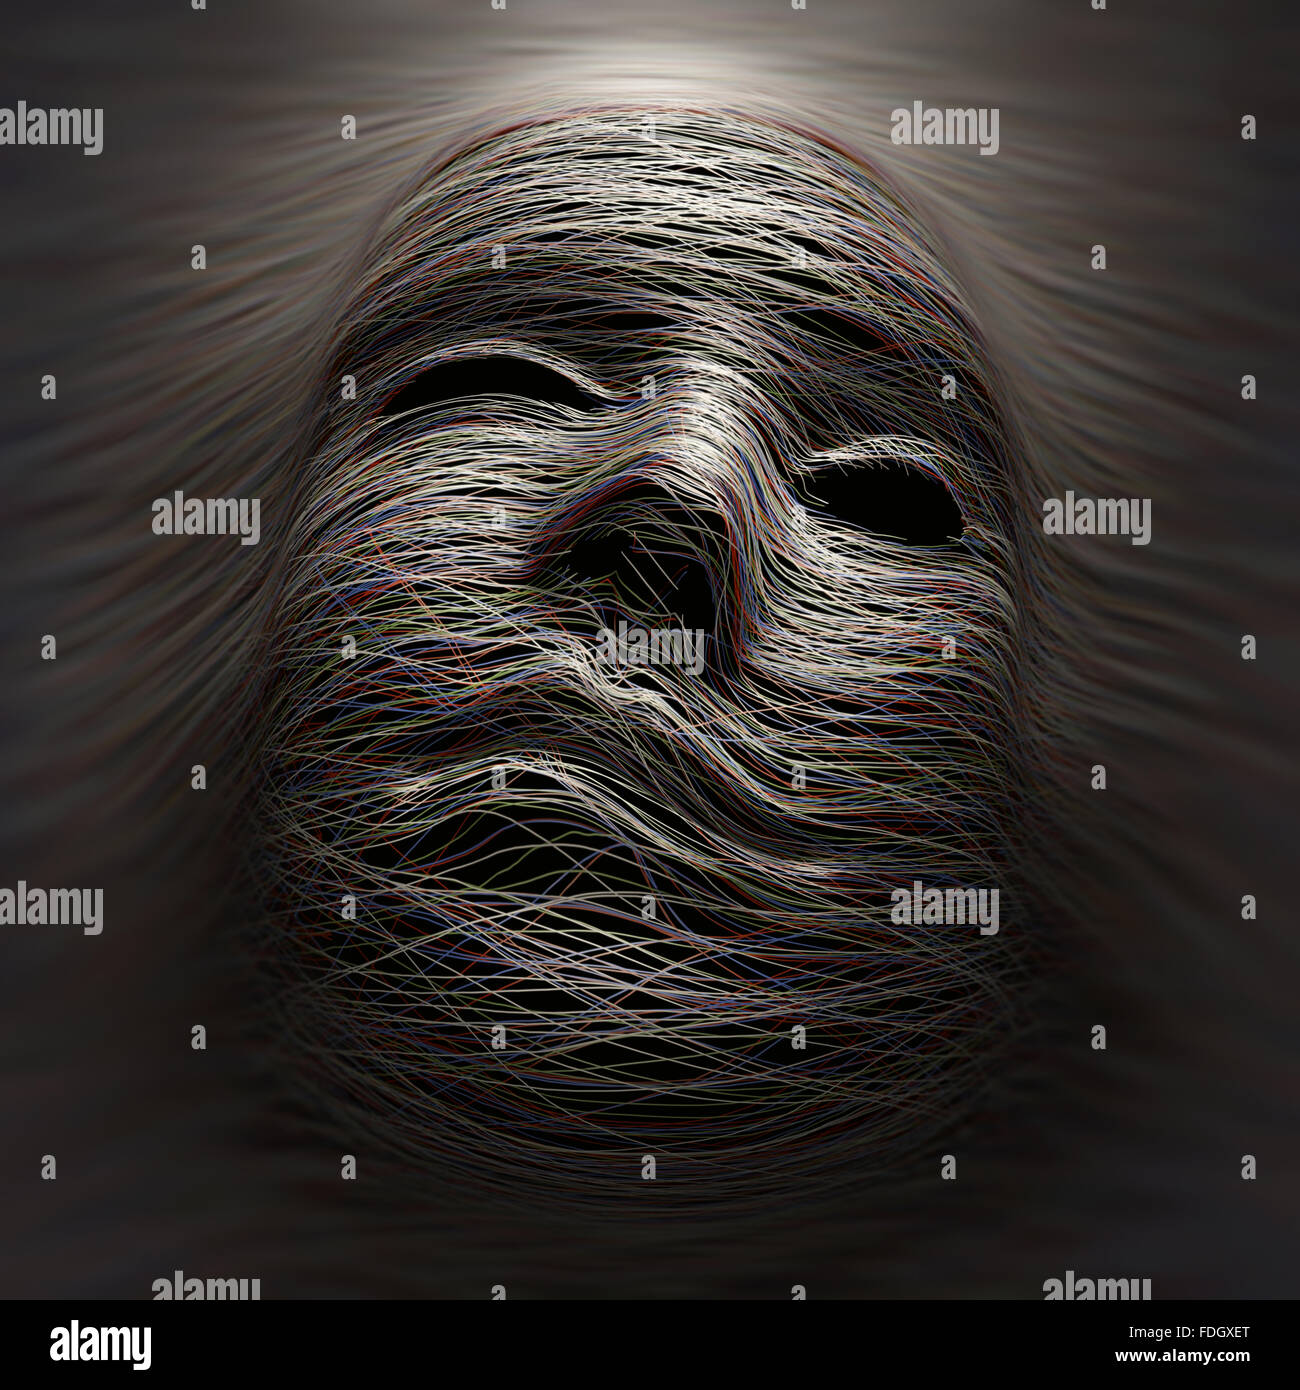 Colored lines covering an imaginary face with expression of pain and agony. - Stock Image